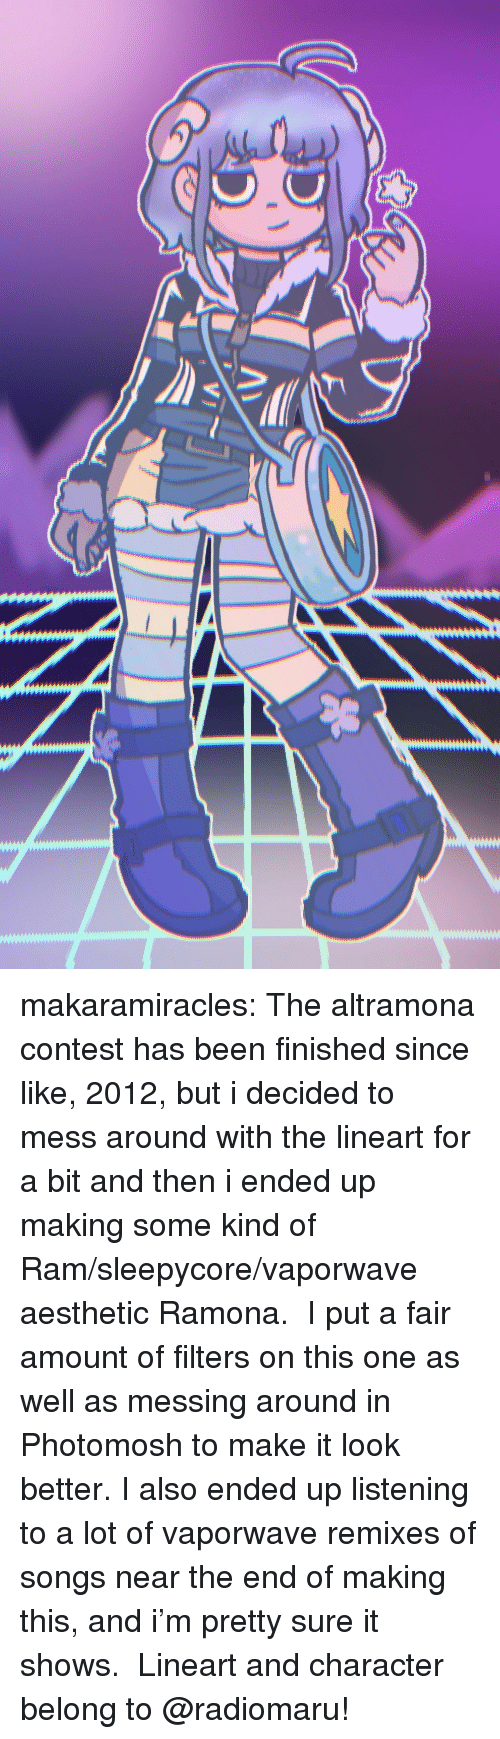 messing around: makaramiracles: The altramona contest has been finished since like, 2012, but i decided to mess around with the lineart for a bit and then i ended up making some kind of Ram/sleepycore/vaporwave aesthetic Ramona. I put a fair amount of filters on this one as well as messing around in Photomosh to make it look better. I also ended up listening to a lot of vaporwave remixes of songs near the end of making this, and i'm pretty sure it shows. Lineart and character belong to @radiomaru!